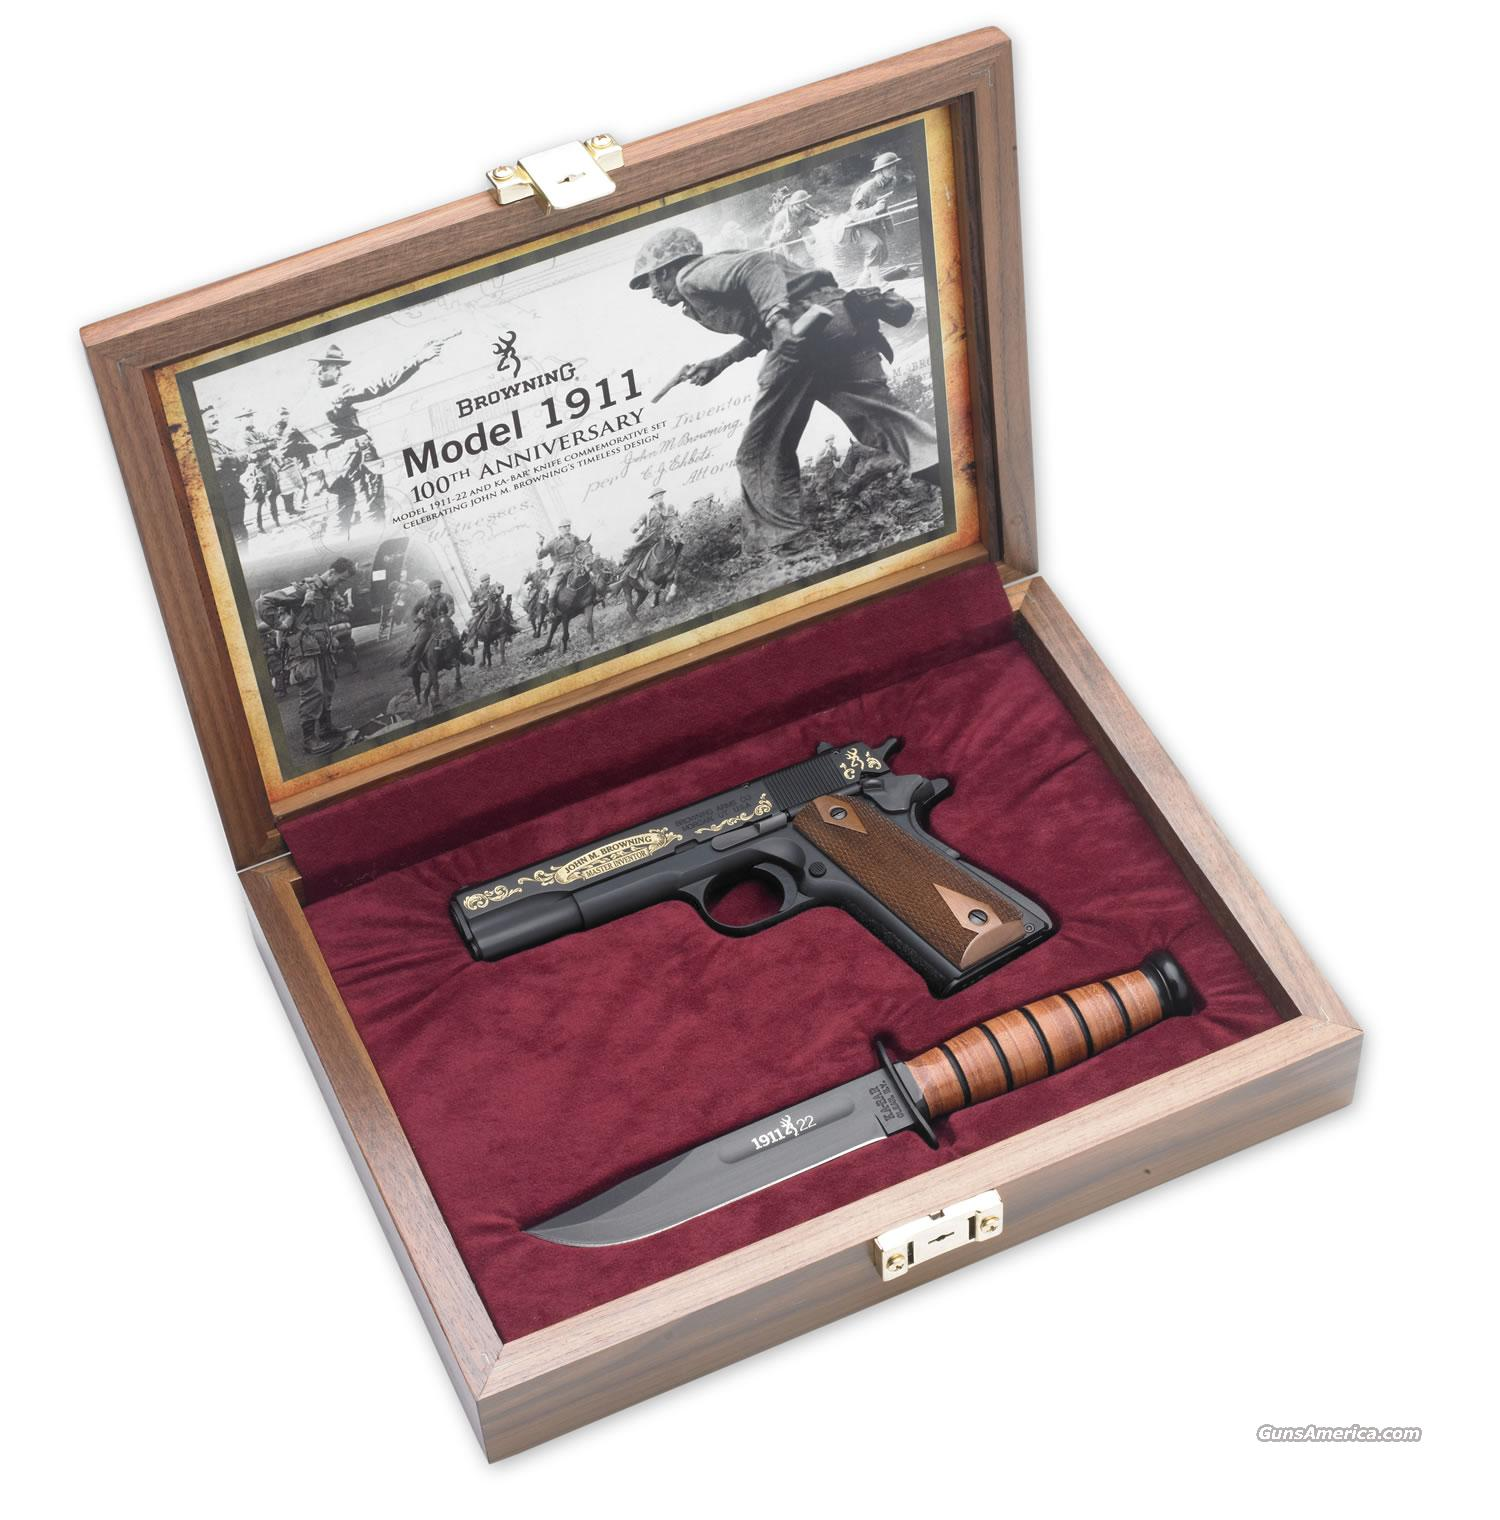 Ltd Edition Cased Browning 1911-22 Commemorative w/ Ka-Bar   22 LR   New!    LAYAWAY OPTION    051804490  Guns > Pistols > Browning Pistols > Other Autos